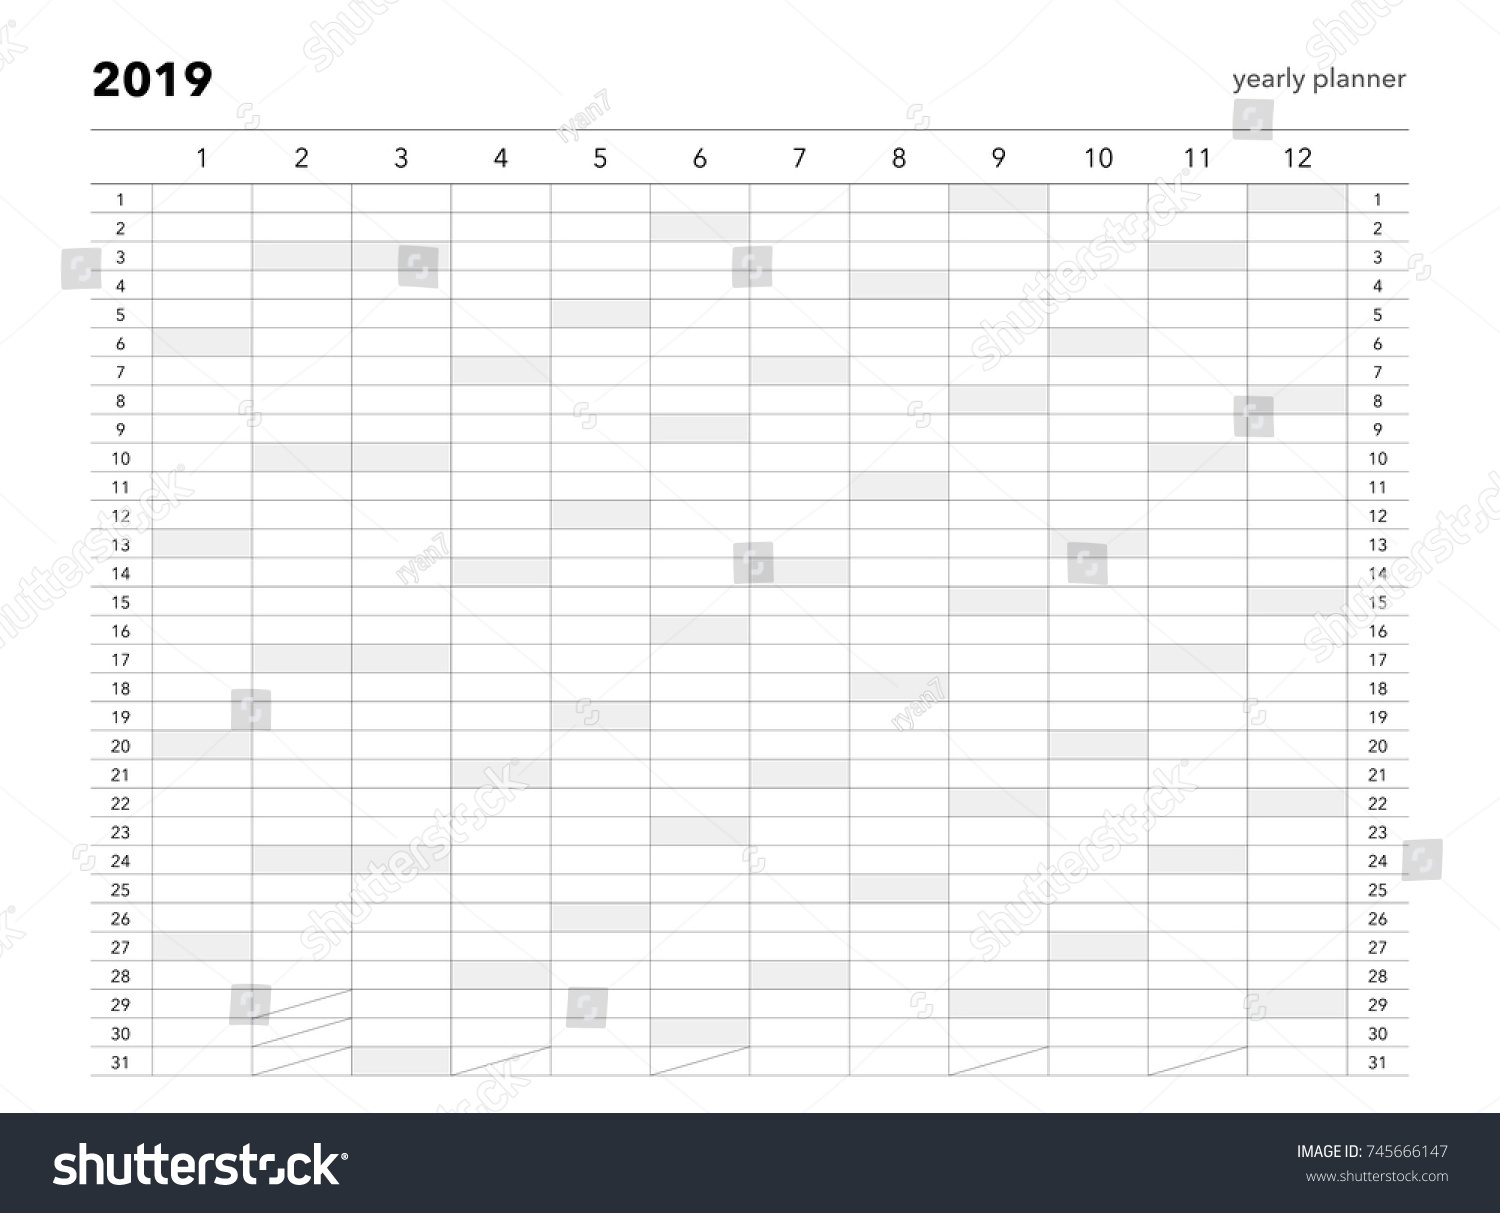 yearly planner 2019 calendar for companies and private use